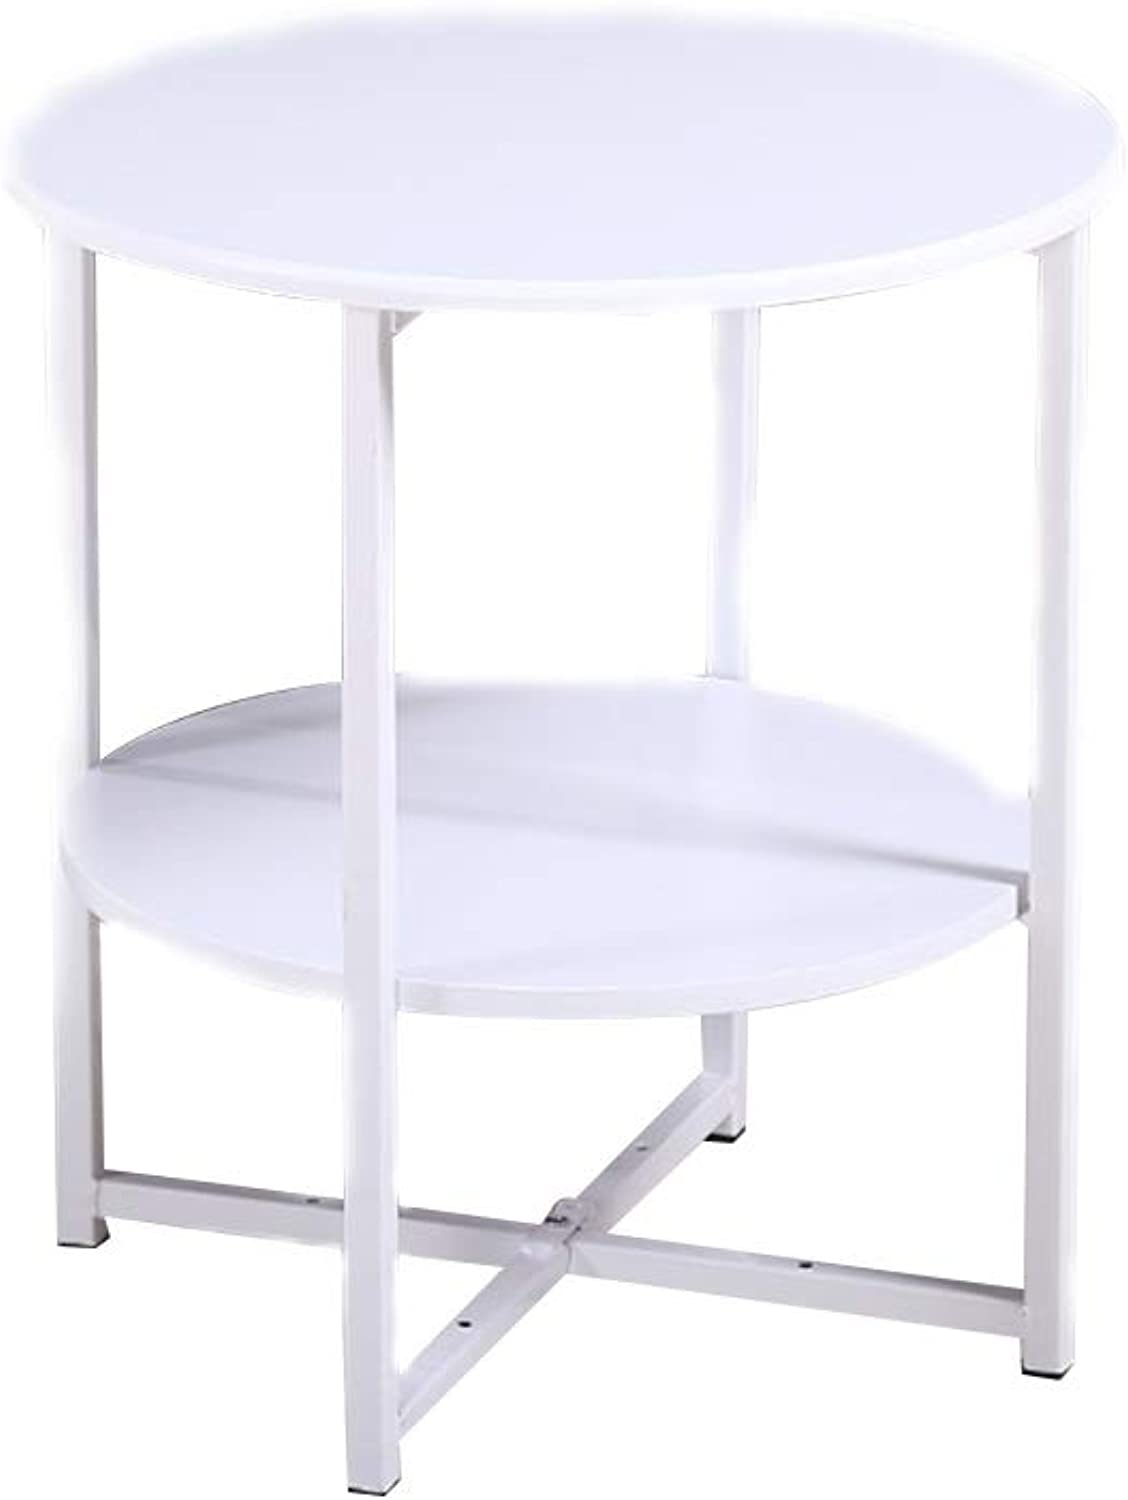 Coffee Table Small Coffee Table, Double Storey Farewell Messy Mini Multipurpose Sofa Side Table (color   White)